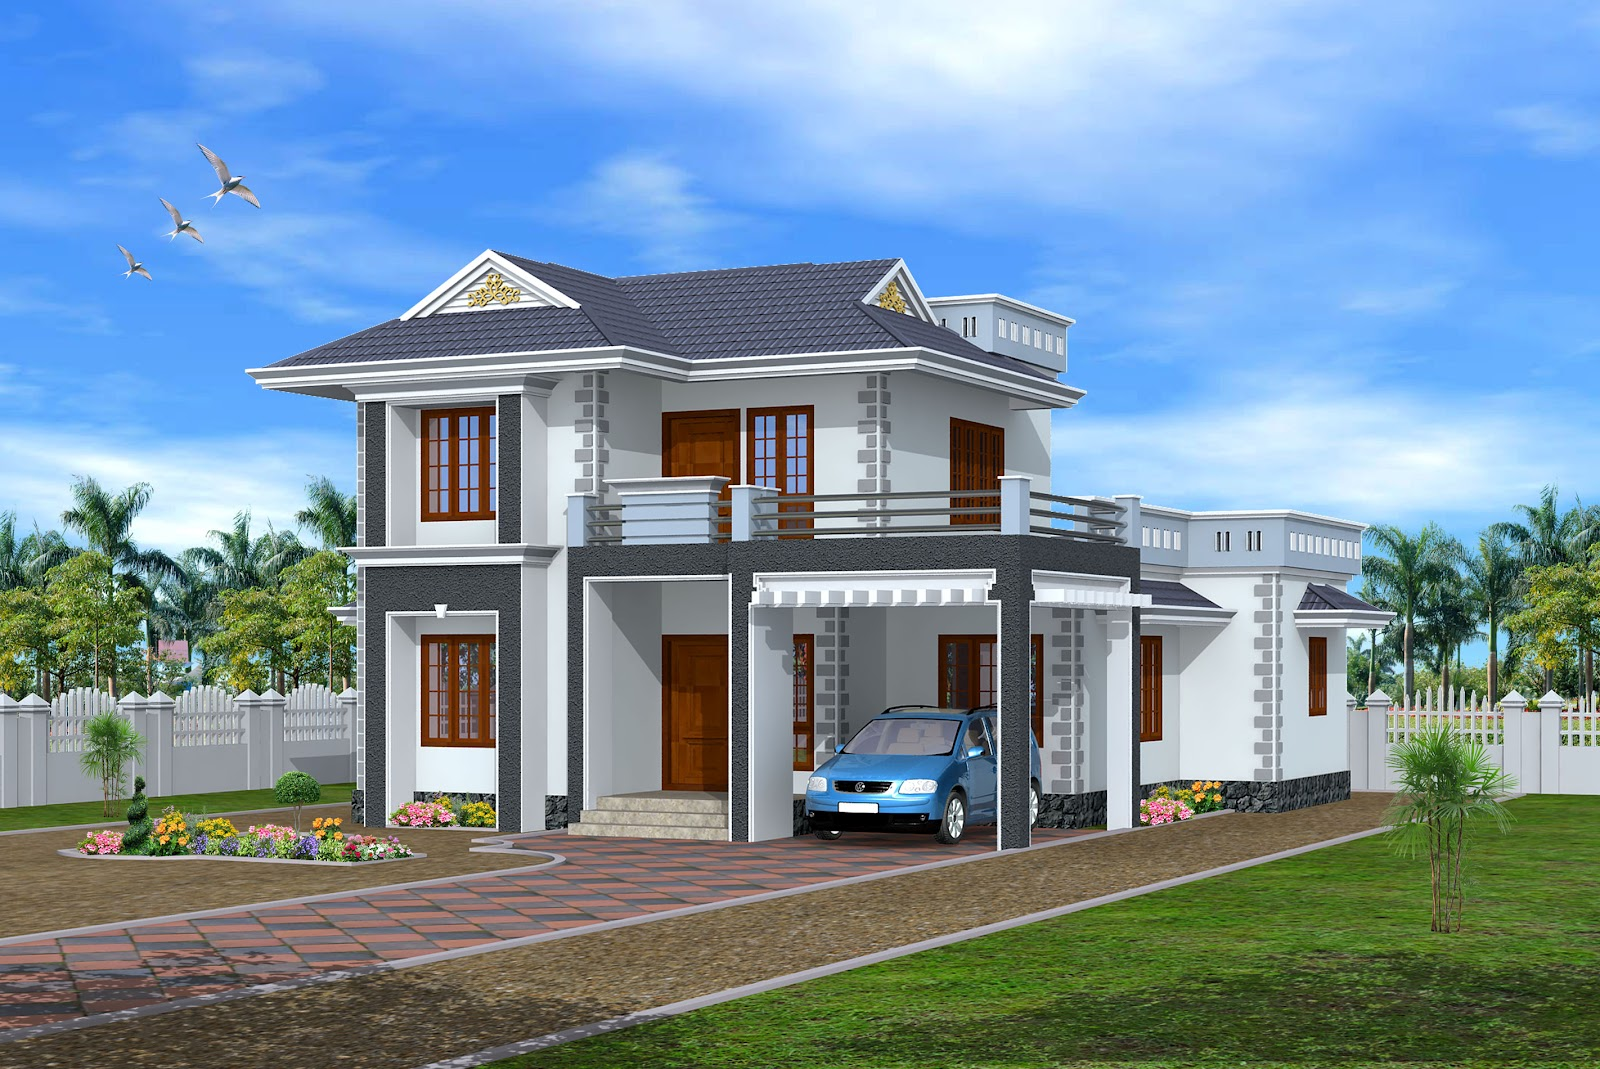 New home designs latest modern homes exterior designs views for House design outside view